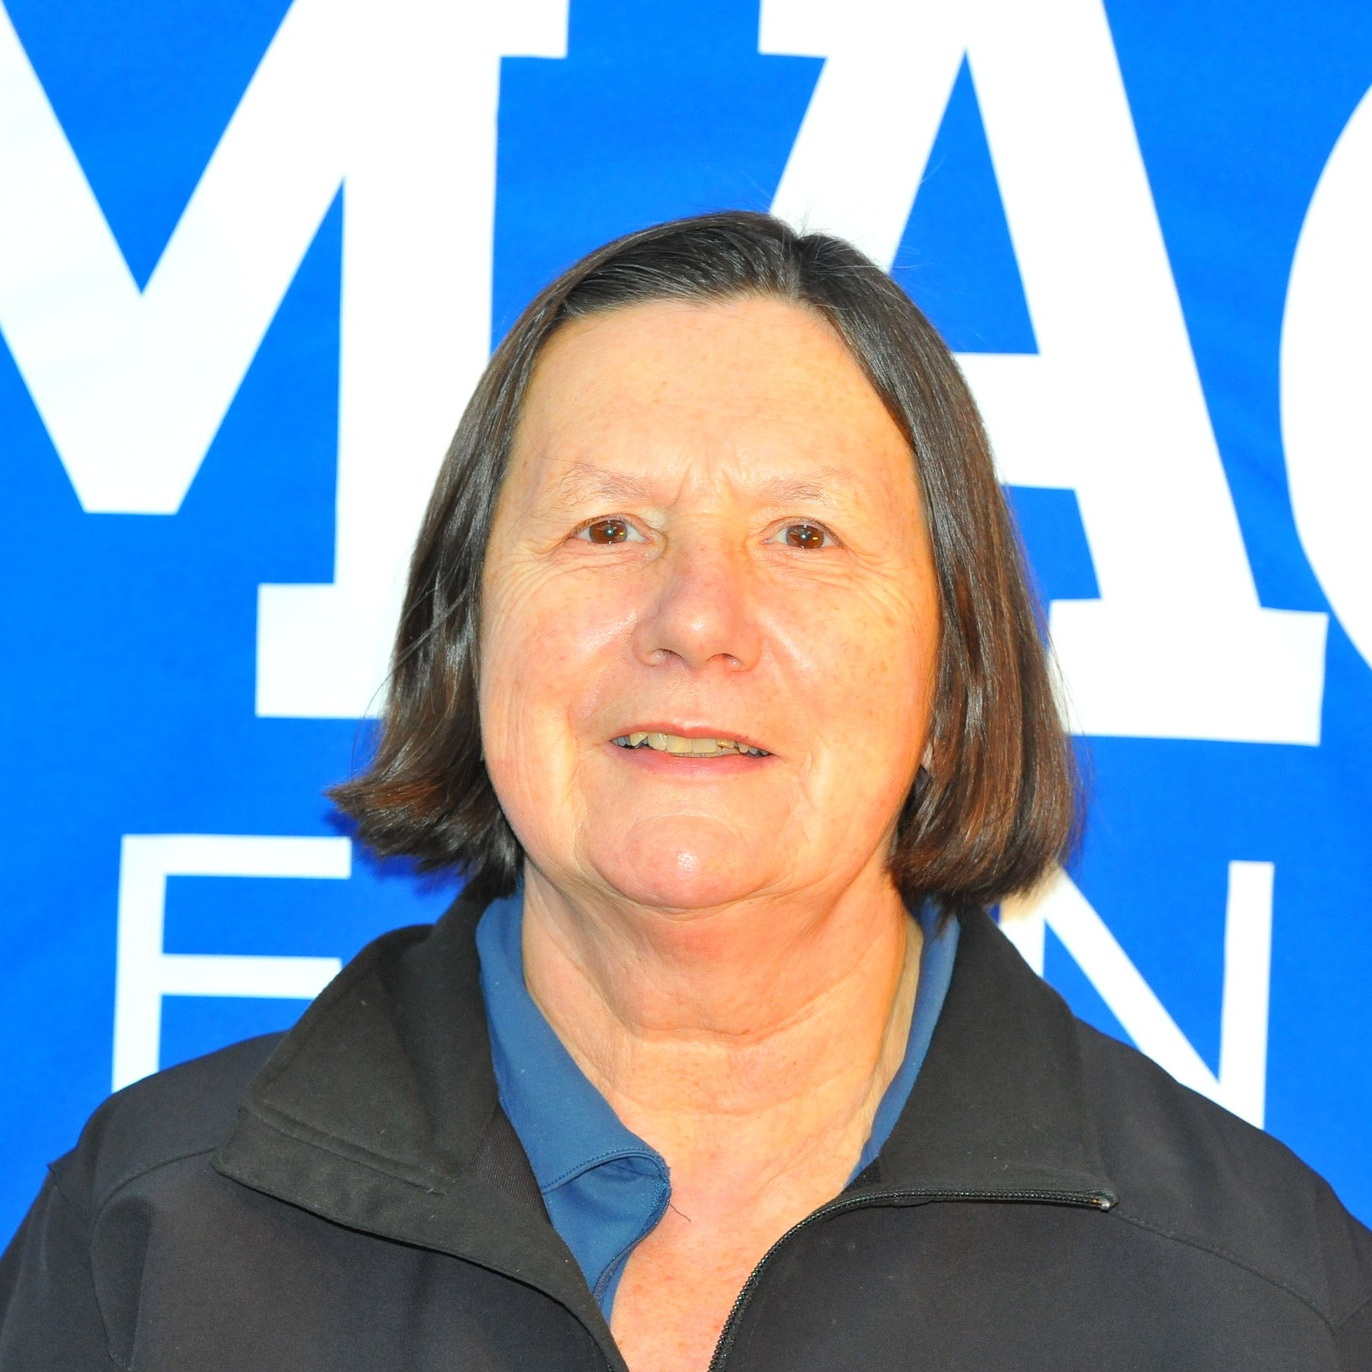 Claudine Watson  -  Tennis Coordinator   Since 1992 Claudine has been a driving force for tennis at the club. As an instructor, coach and administrator, Claudine is in charge of many of the club's teams and handles the department's financials. During her tenure, she devised and launched many of the initial adult and junior programs including the first Kid's Club and Ladies Summer Camps programs.   cwatston@macathletics.com